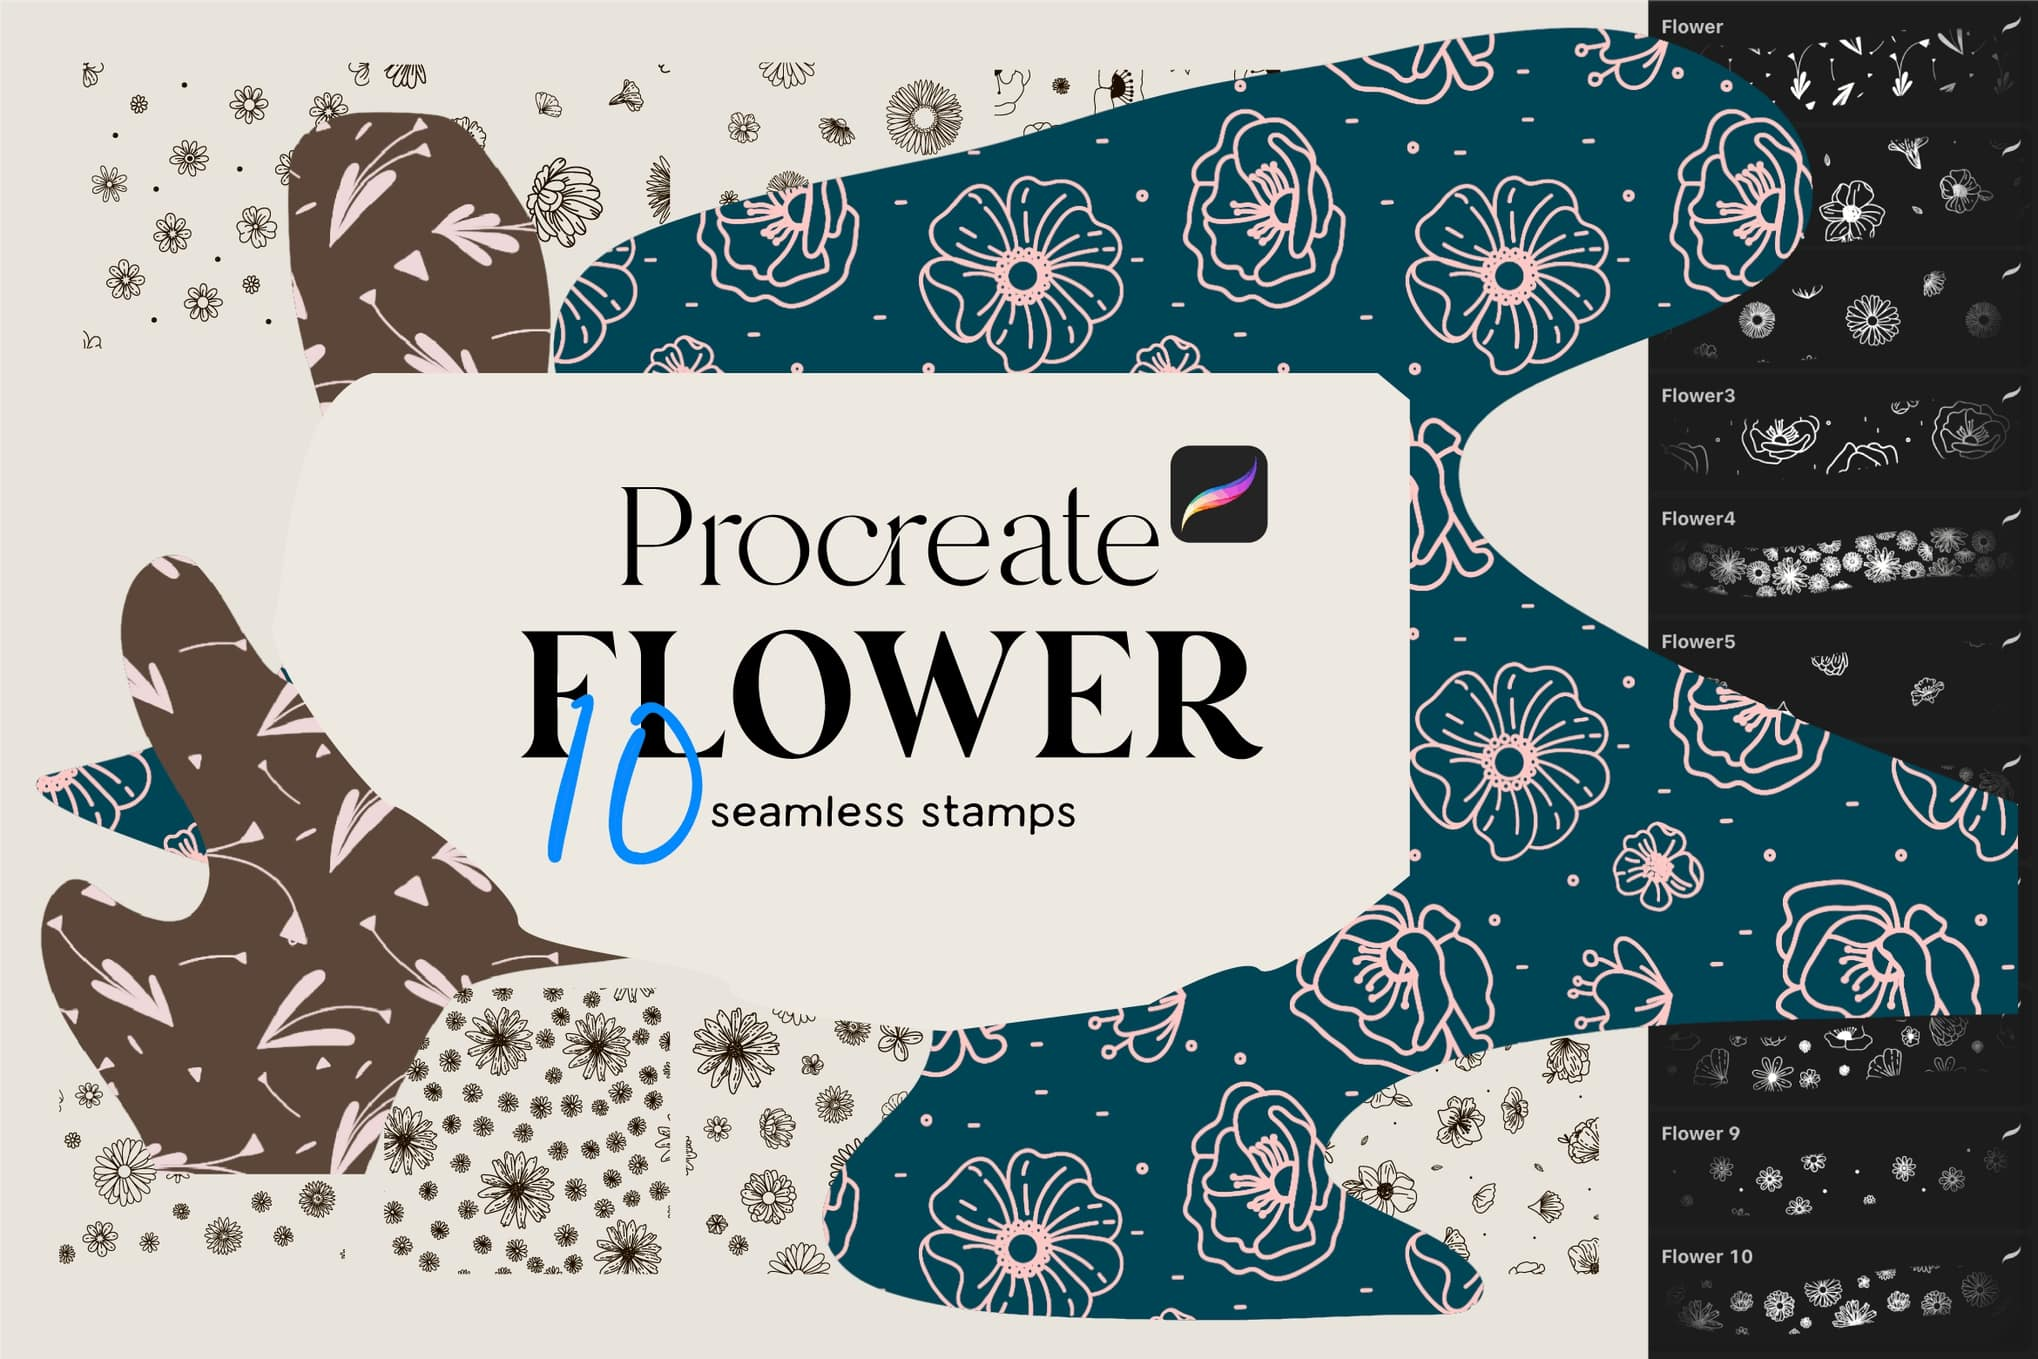 10 Flowers stamps for Procreate